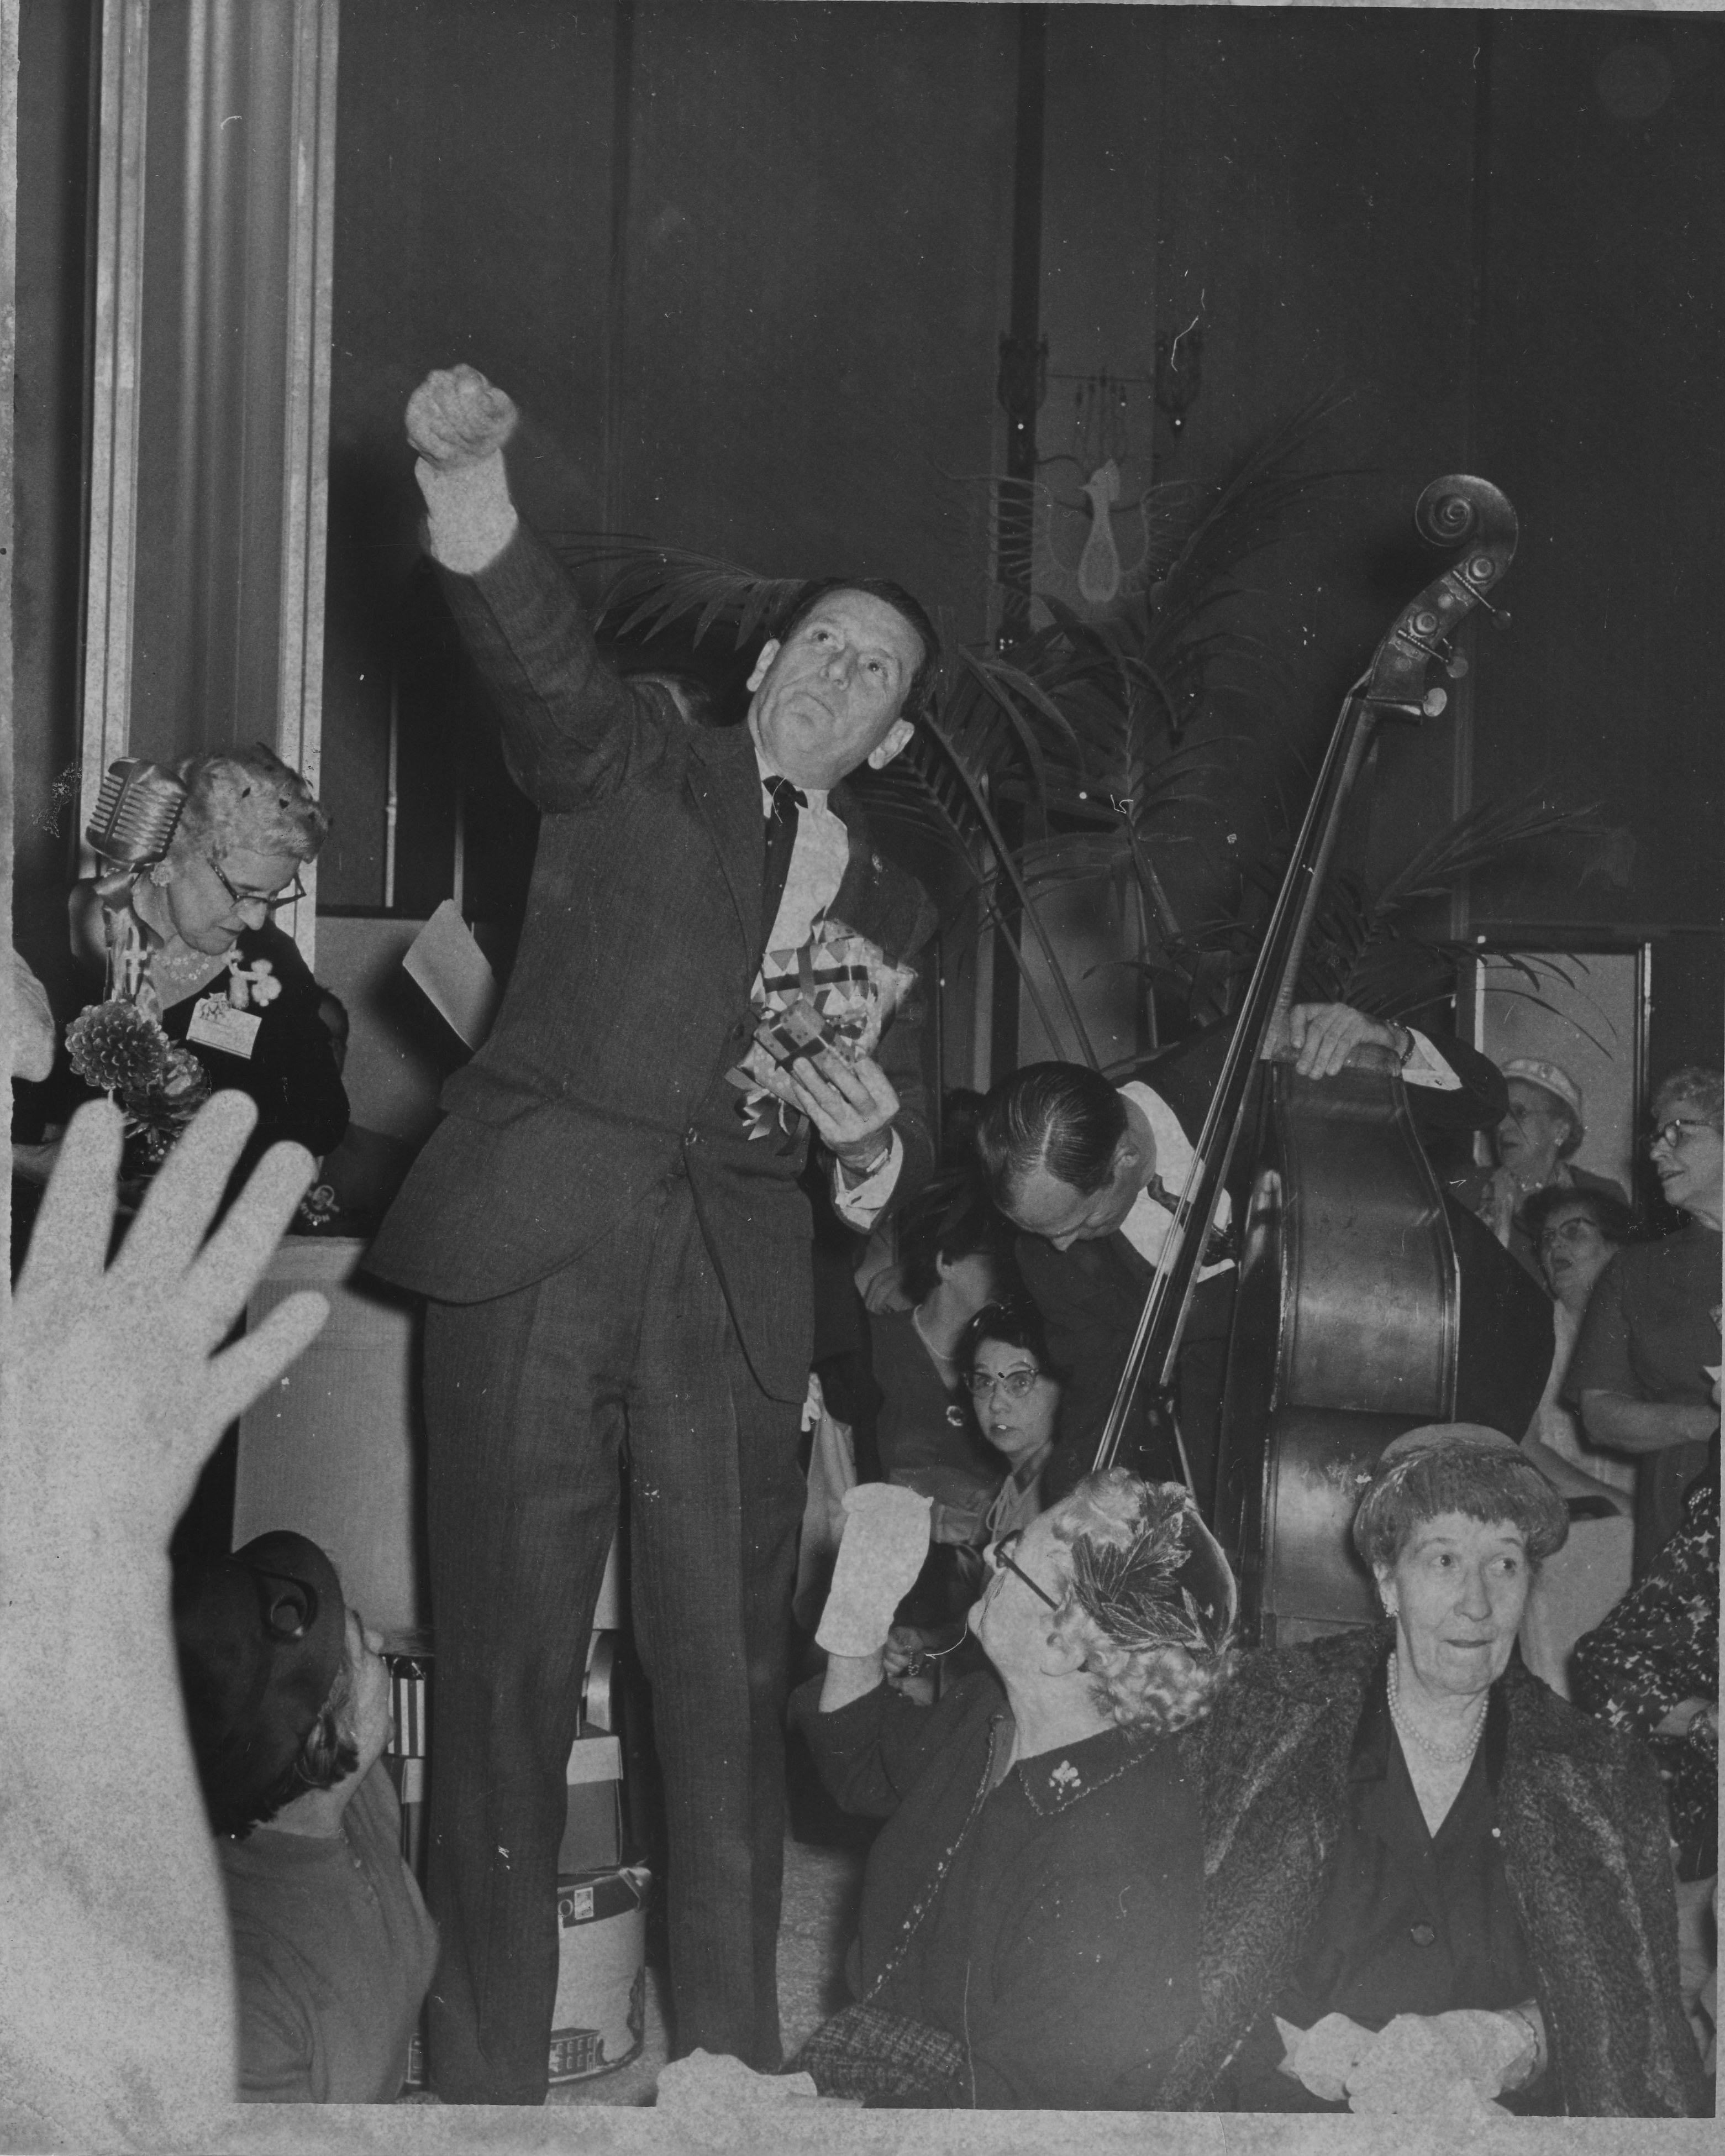 U.S. Congressman James G. Fulton hurls gifts to a crowd of guests at a political shindig for Richard Nixon in 1959.